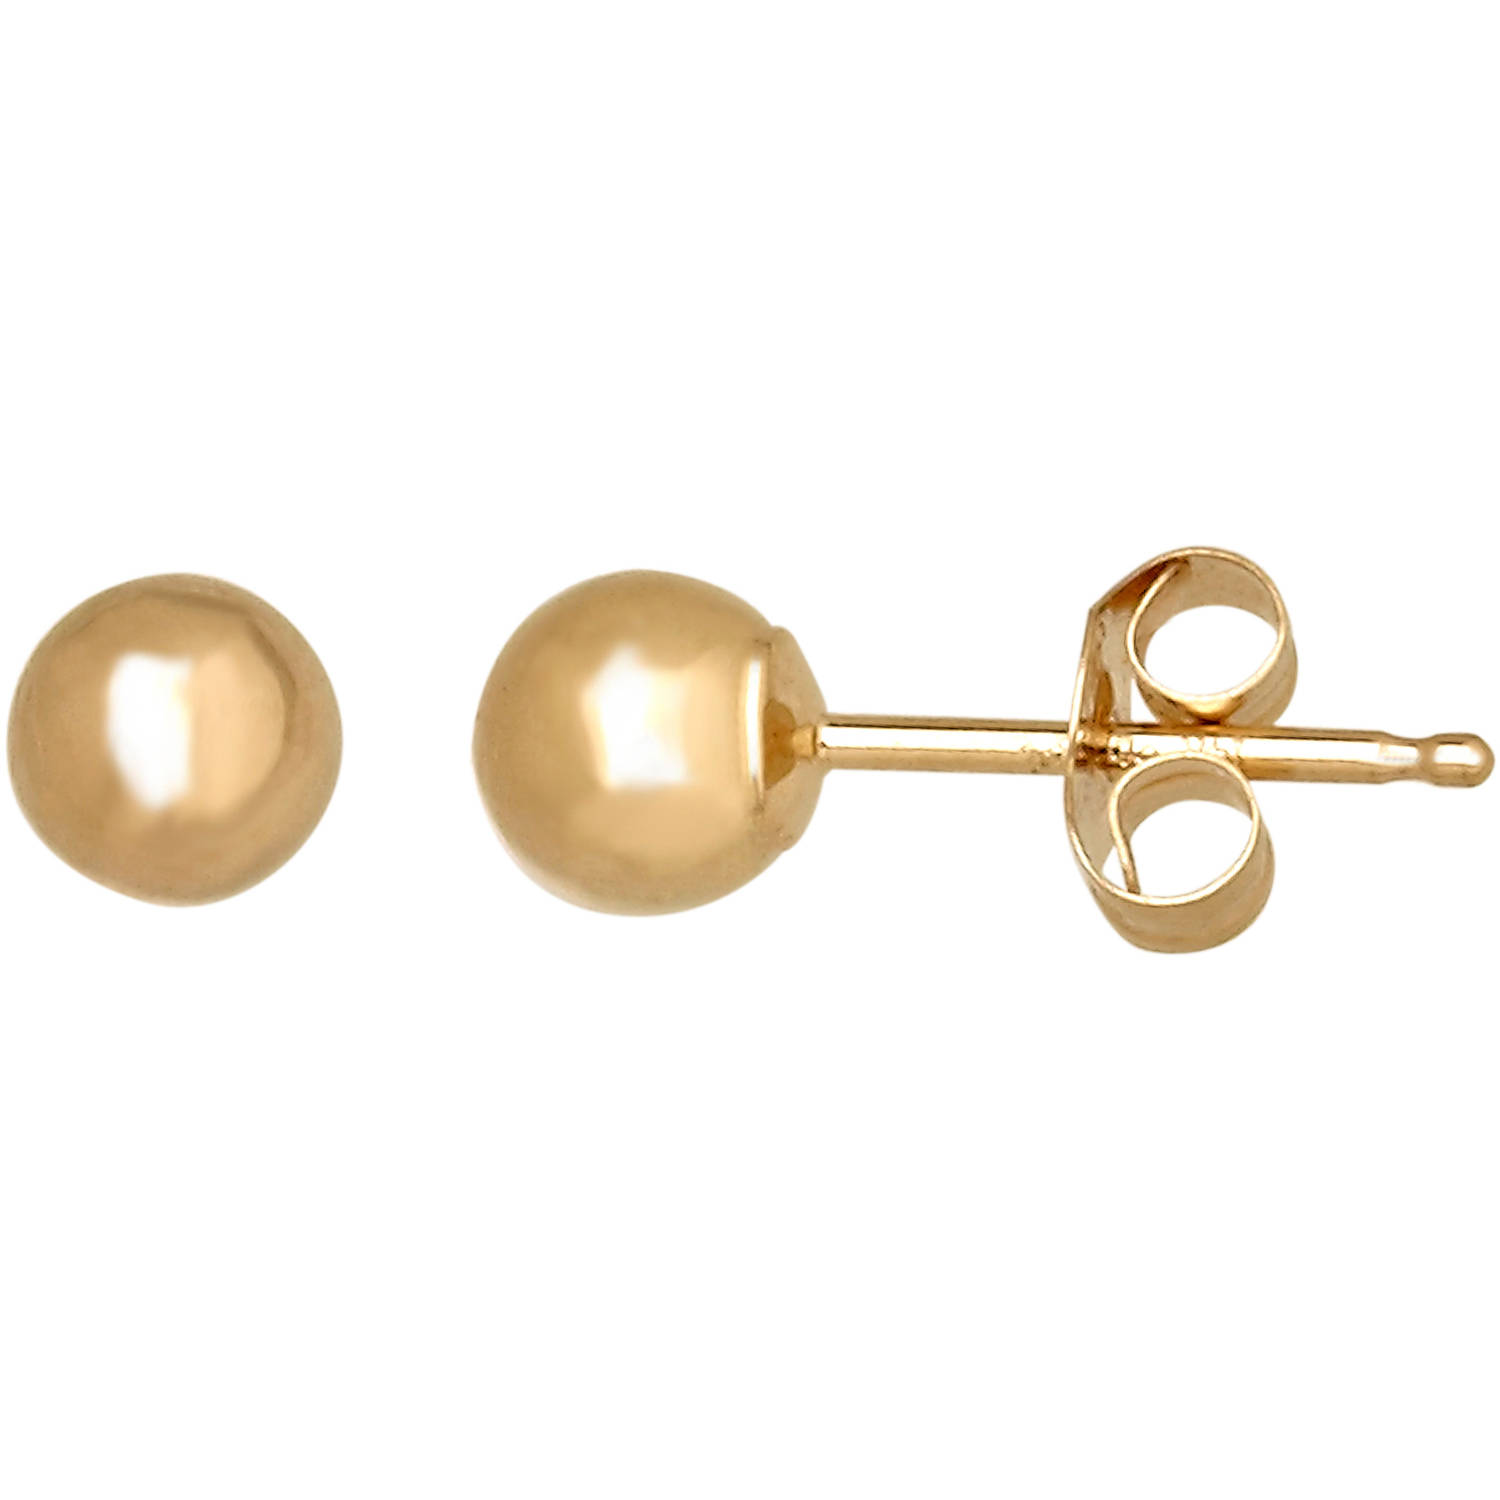 Simply Gold 14kt Yellow 4mm Ball Stud Earrings